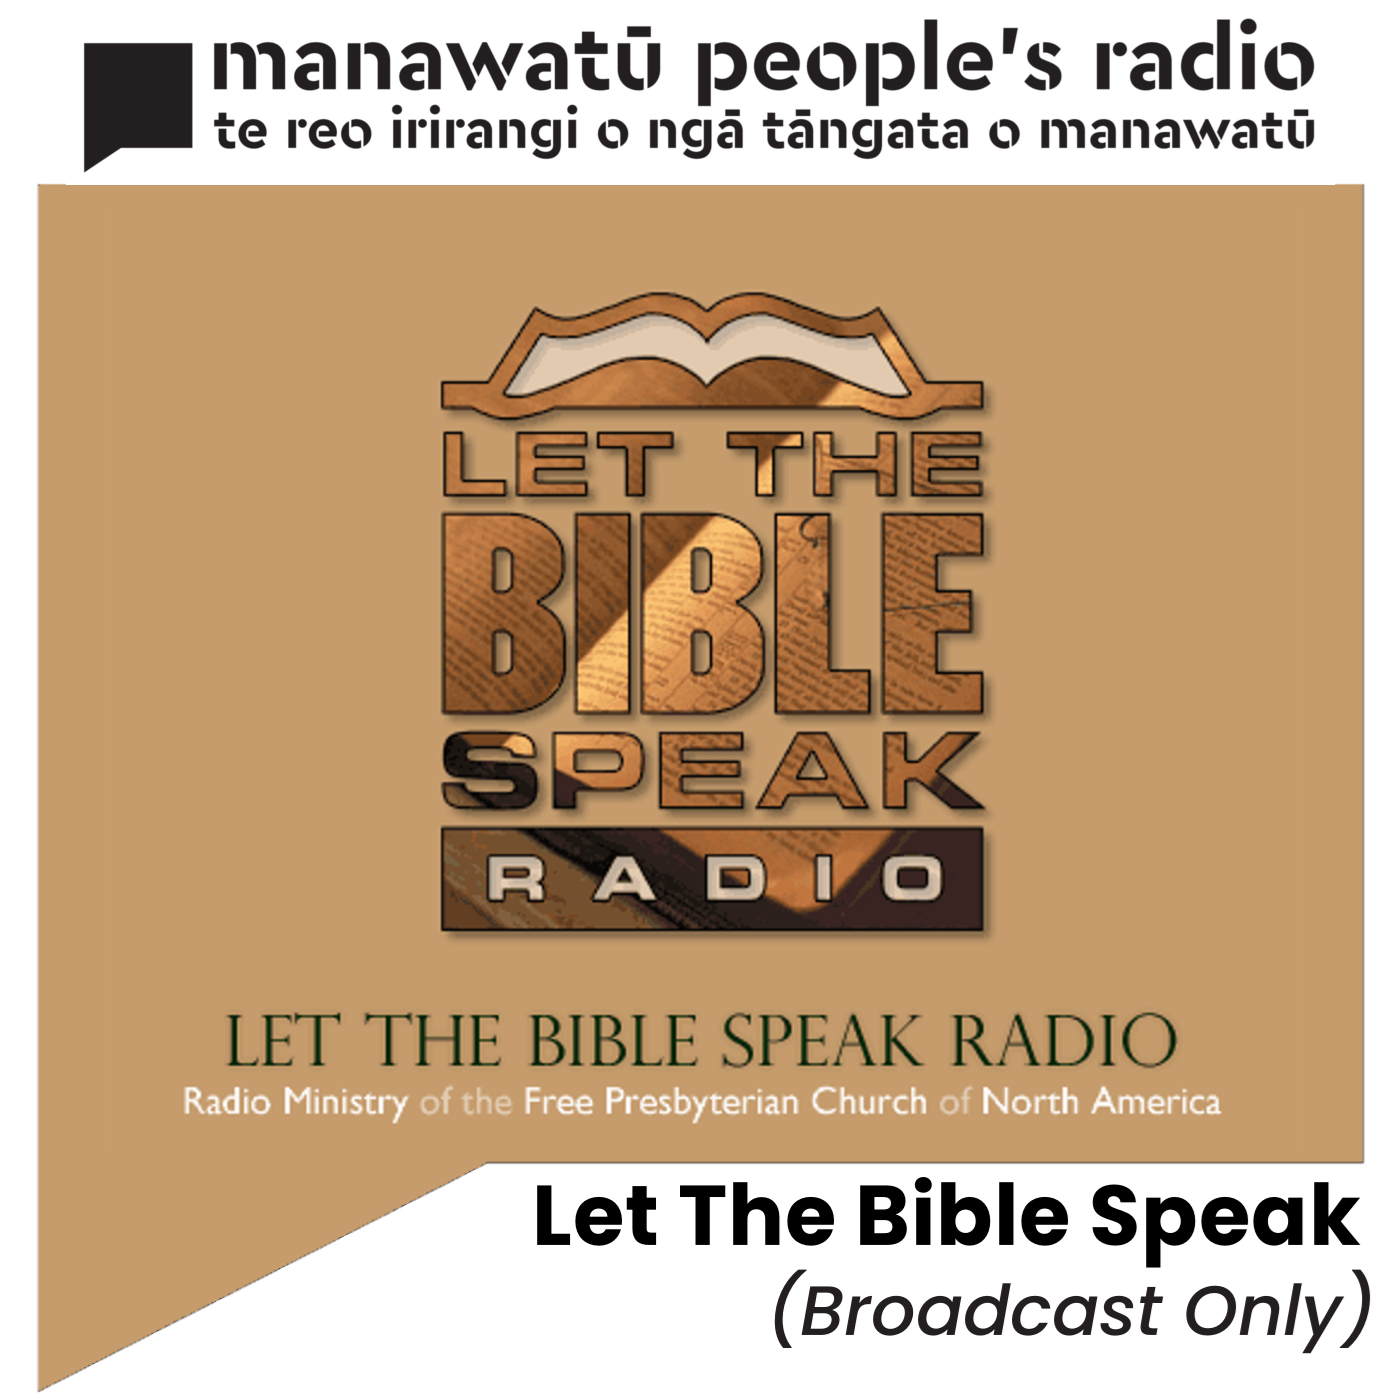 Let The Bible Speak (Broadcast Only)